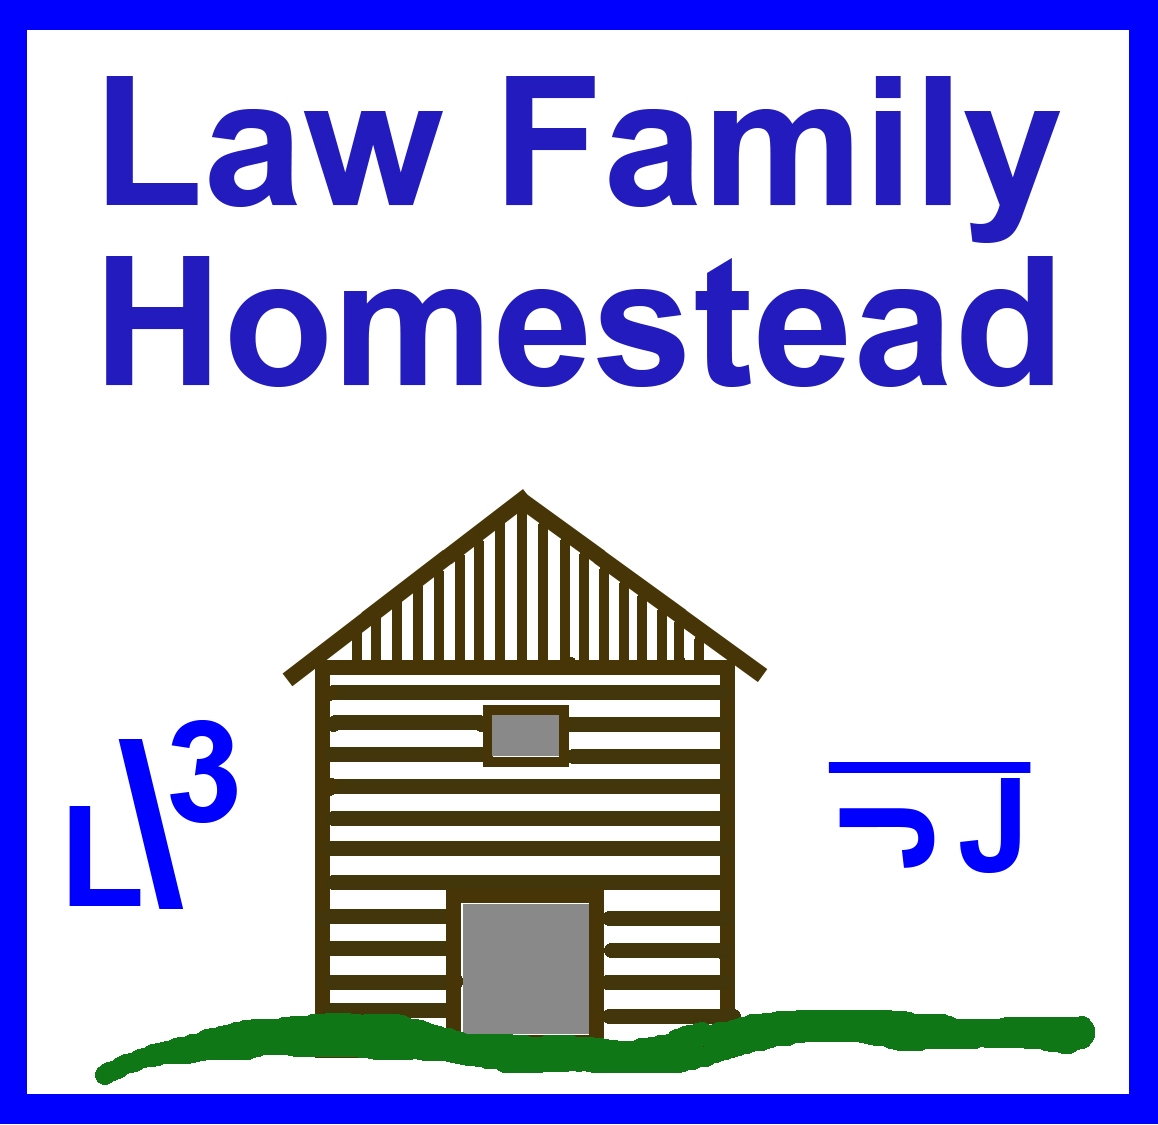 Law Family Homestead